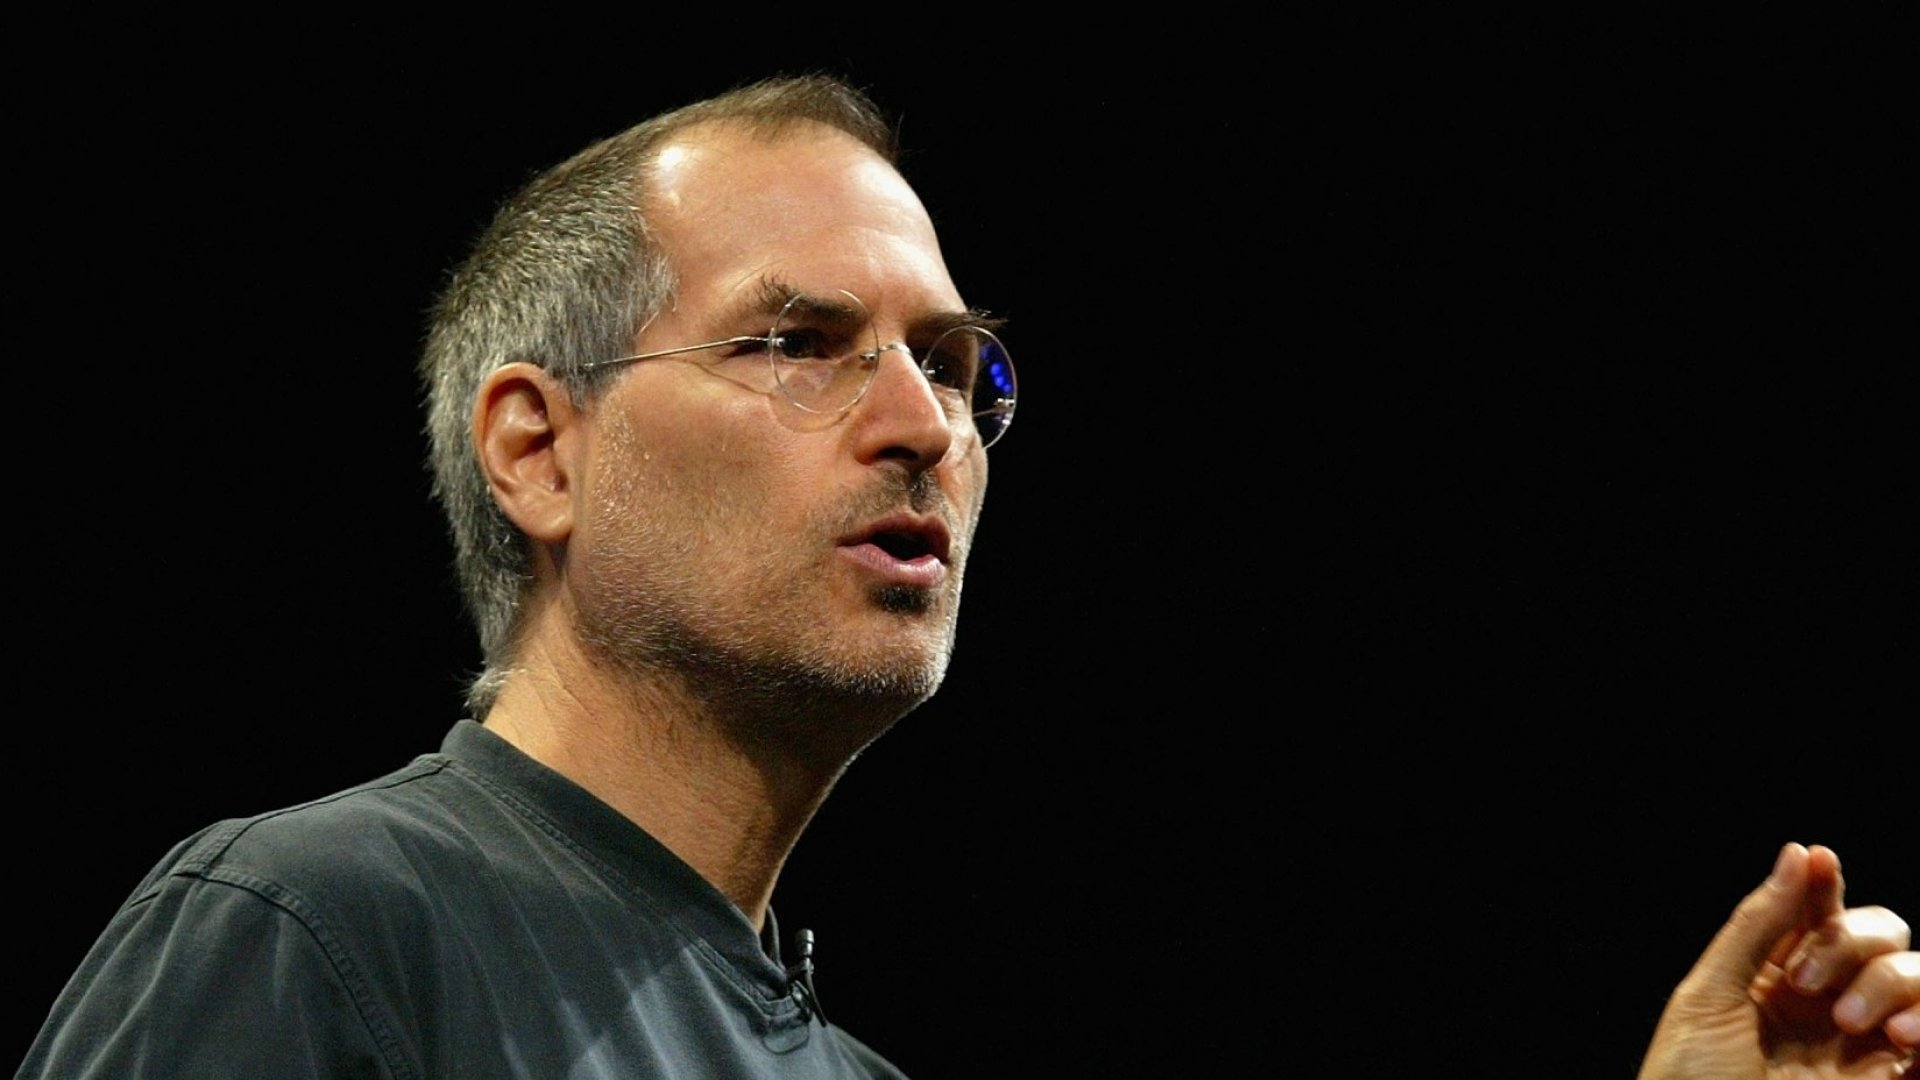 10 Best Lines Steve Jobs Used in a Presentation